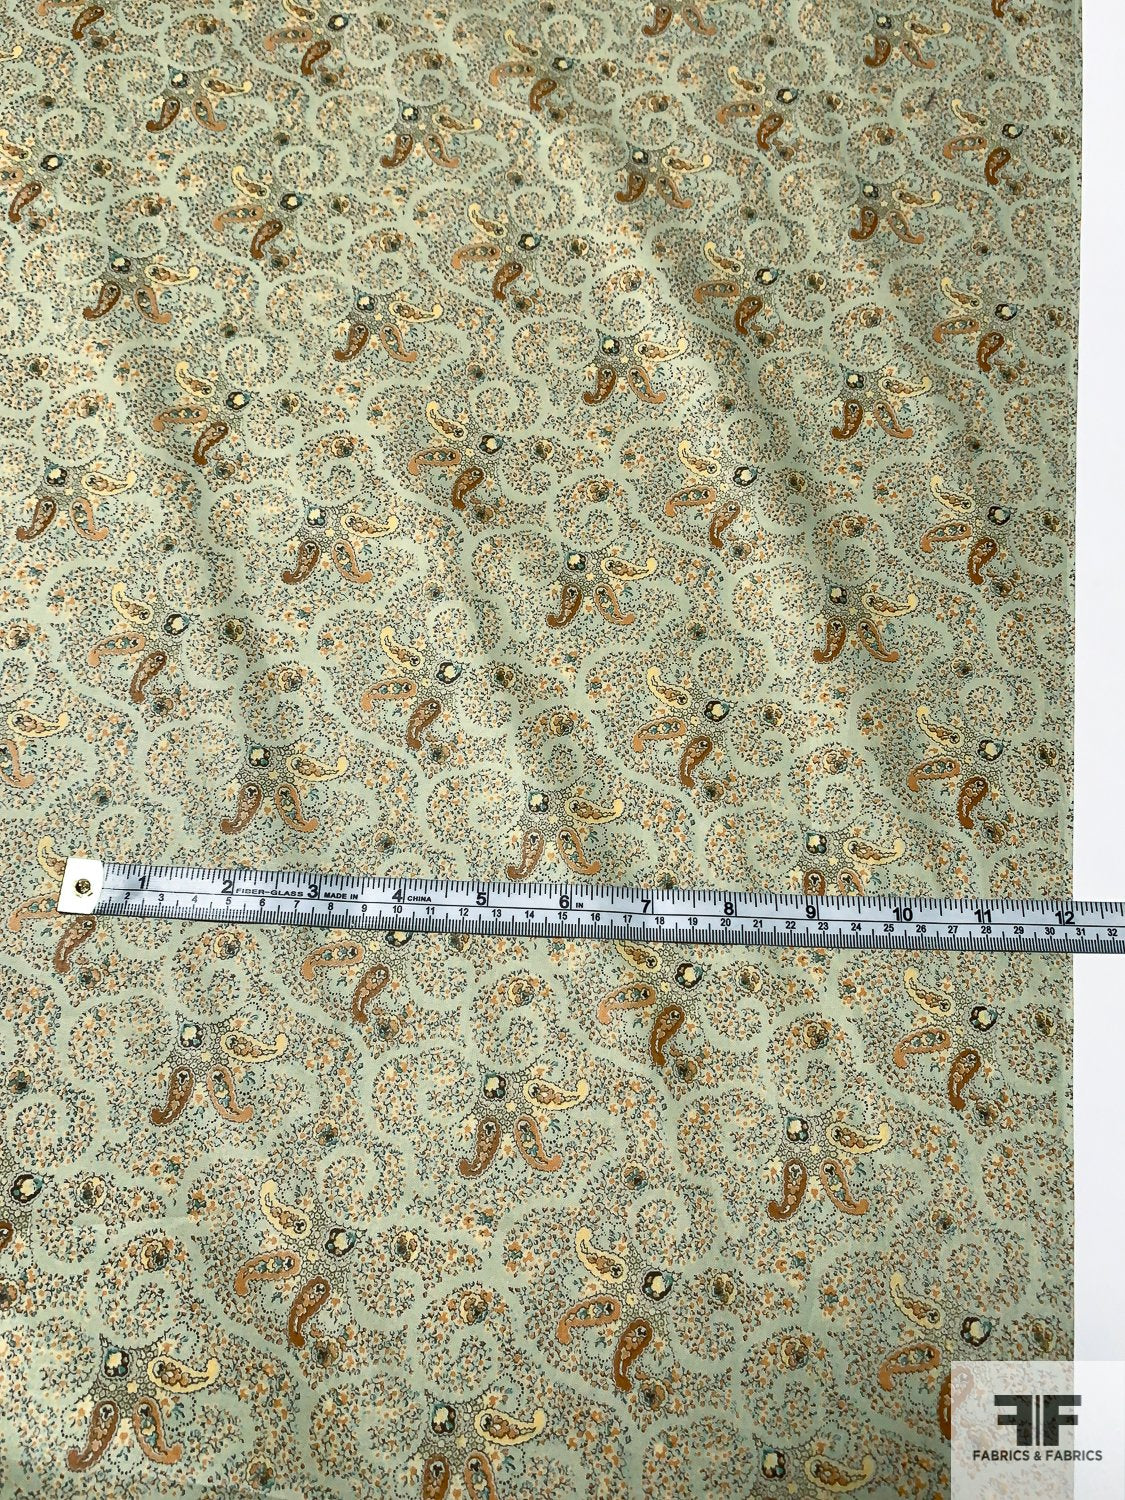 Liberty of London Paisley Printed Fine Cotton Lawn - Light Sage / Tan / Teal